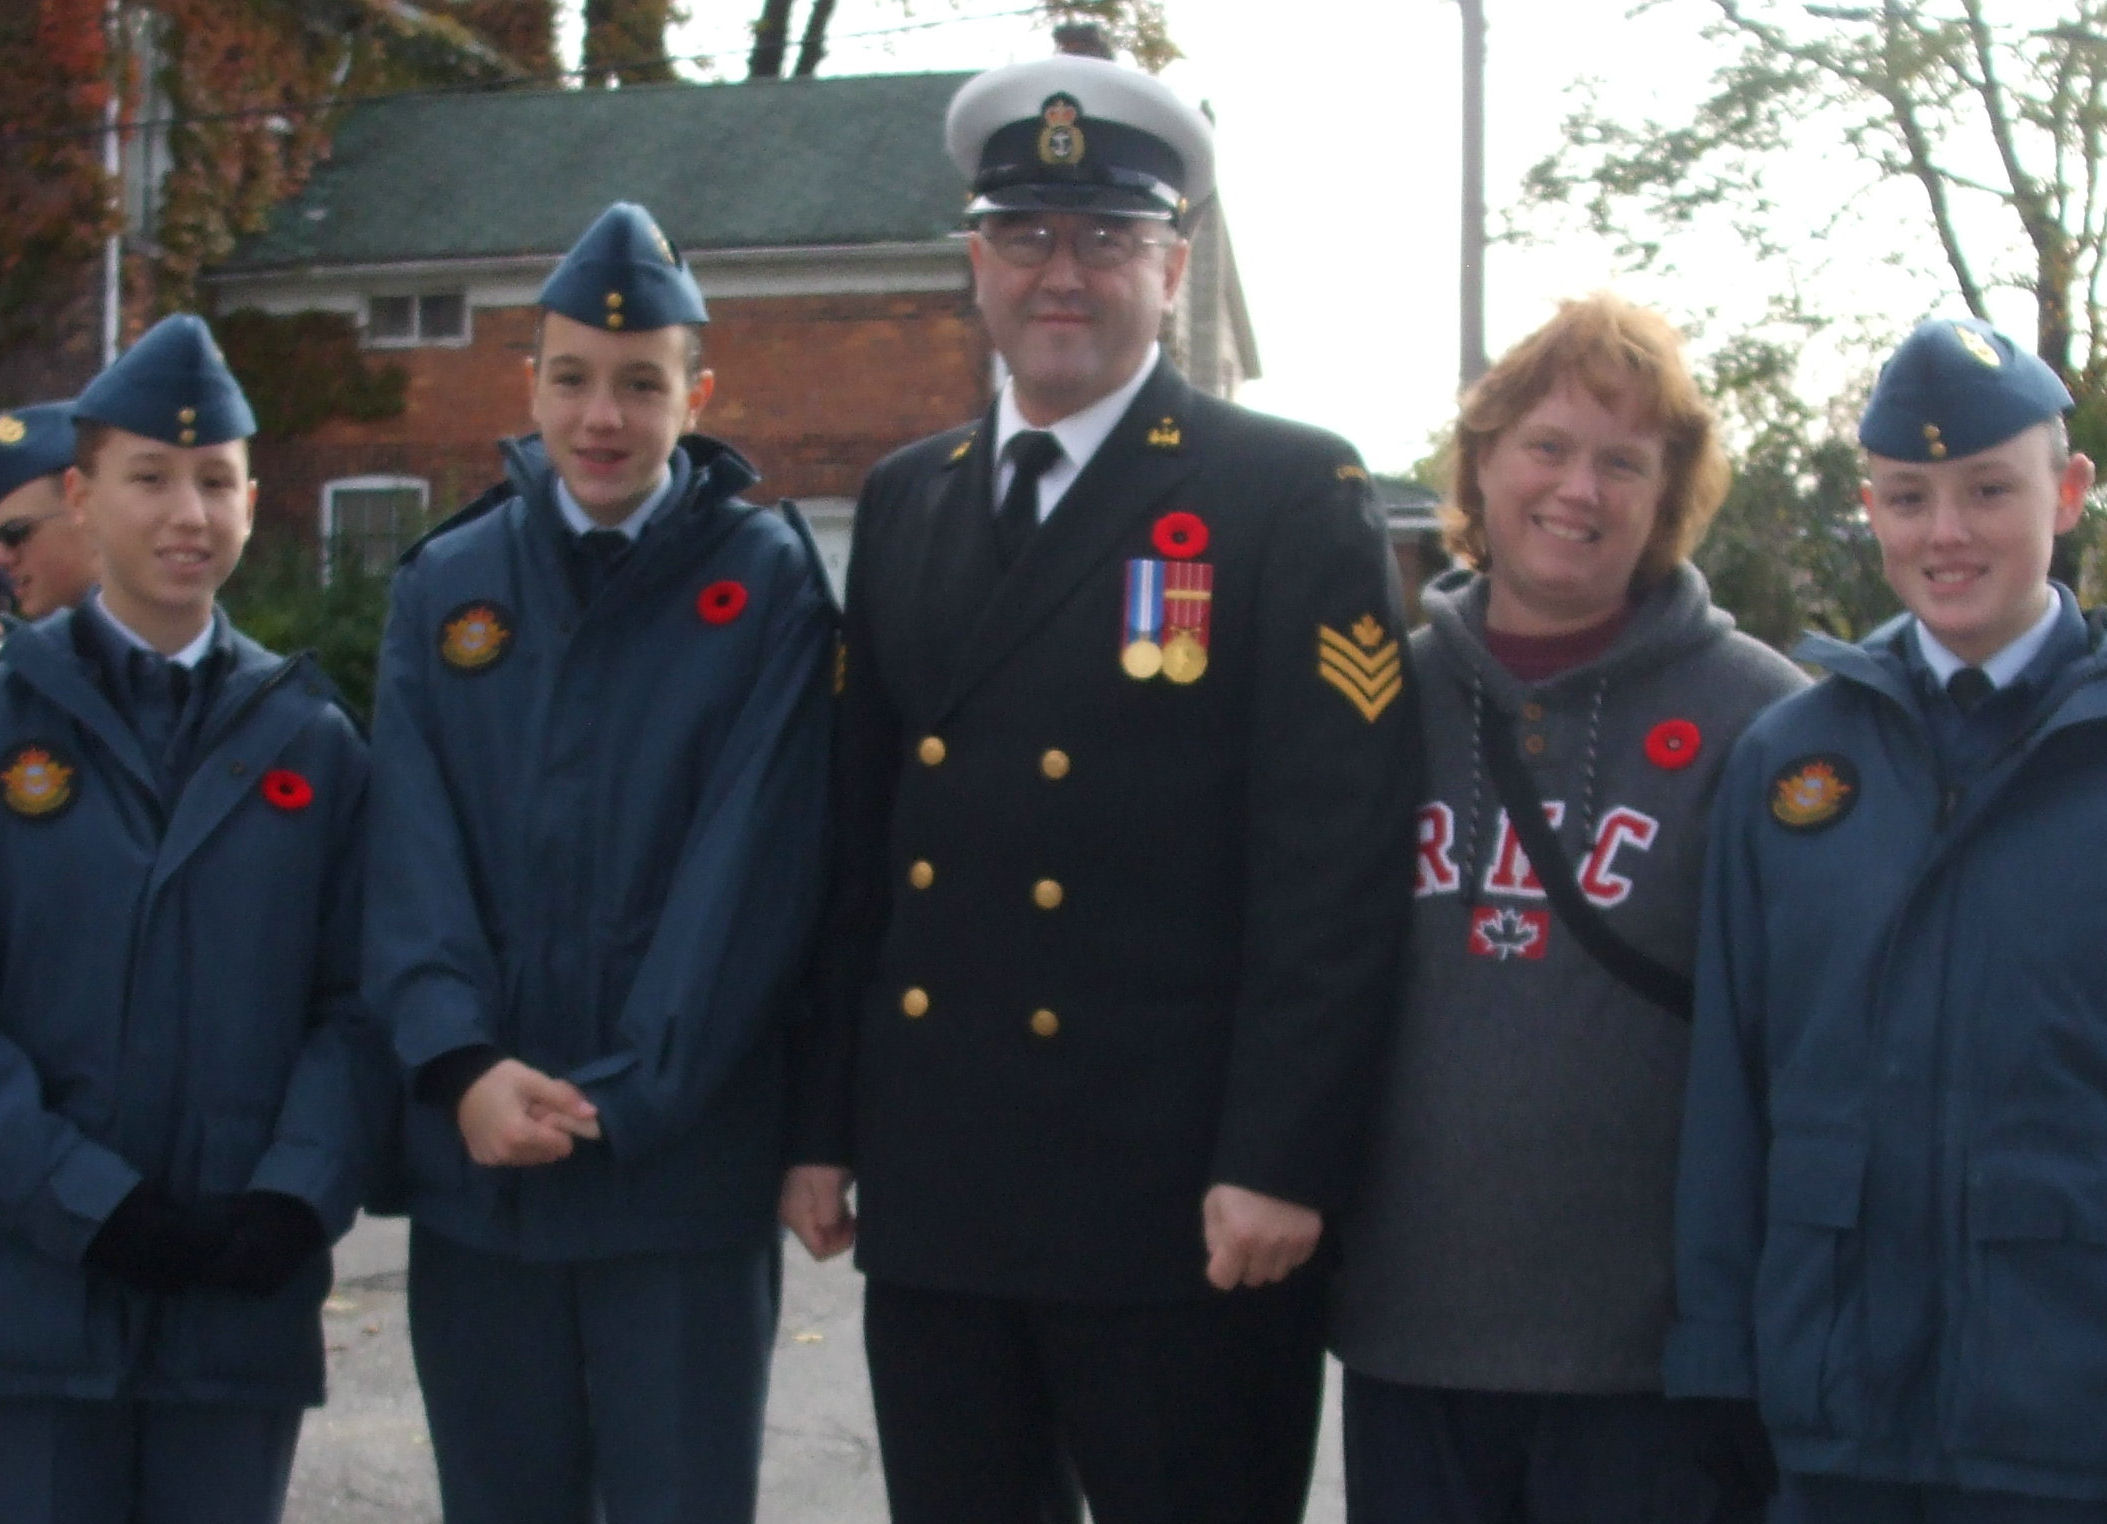 "Group Photo– 11/11/2007 Remembrance Day Ceremony: left to right Air Cadet Flight Corporal Amber Clements (Great Grand-Daughter);  Air Cadet Corporal Erika Clements(Great Grand-Daughter); PO1 Kevin Clements(Royal Canadian Navy / Marine Canadienne Royale); Donna Blais-Clements(Grand-Daughter); and Air Cadet Sargeant Kellie Clements(Great Grand-Daughter).  ""Ready Aye Ready""!"